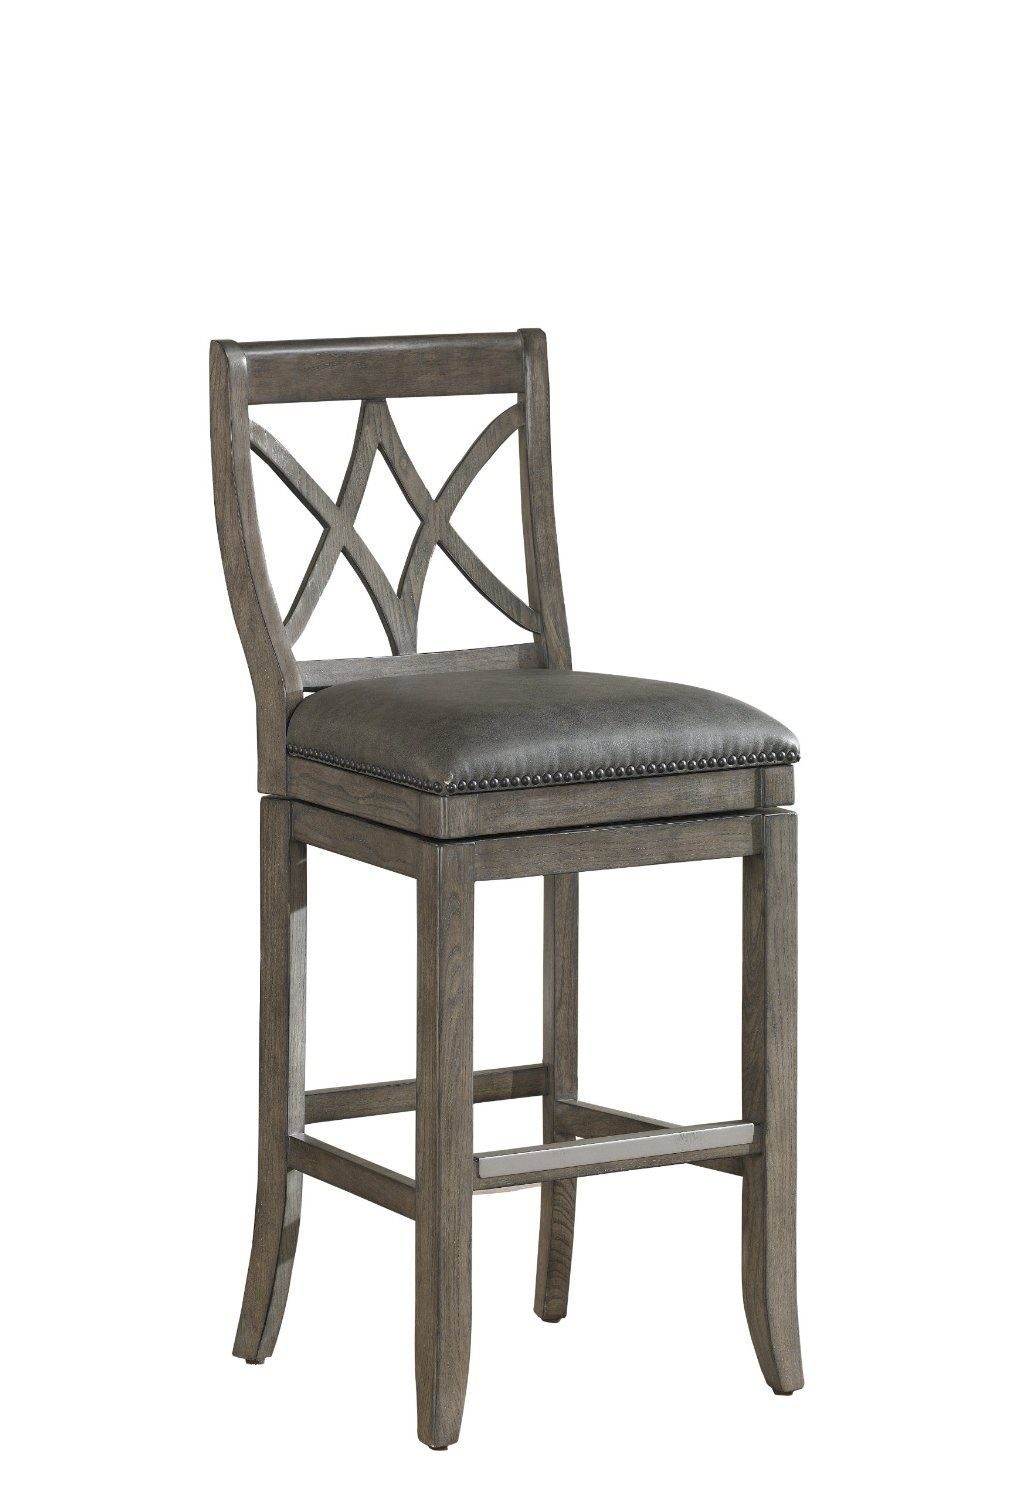 tailored to perfection this graceful american heritage billiards hadley bar stool is sure to enhance your space